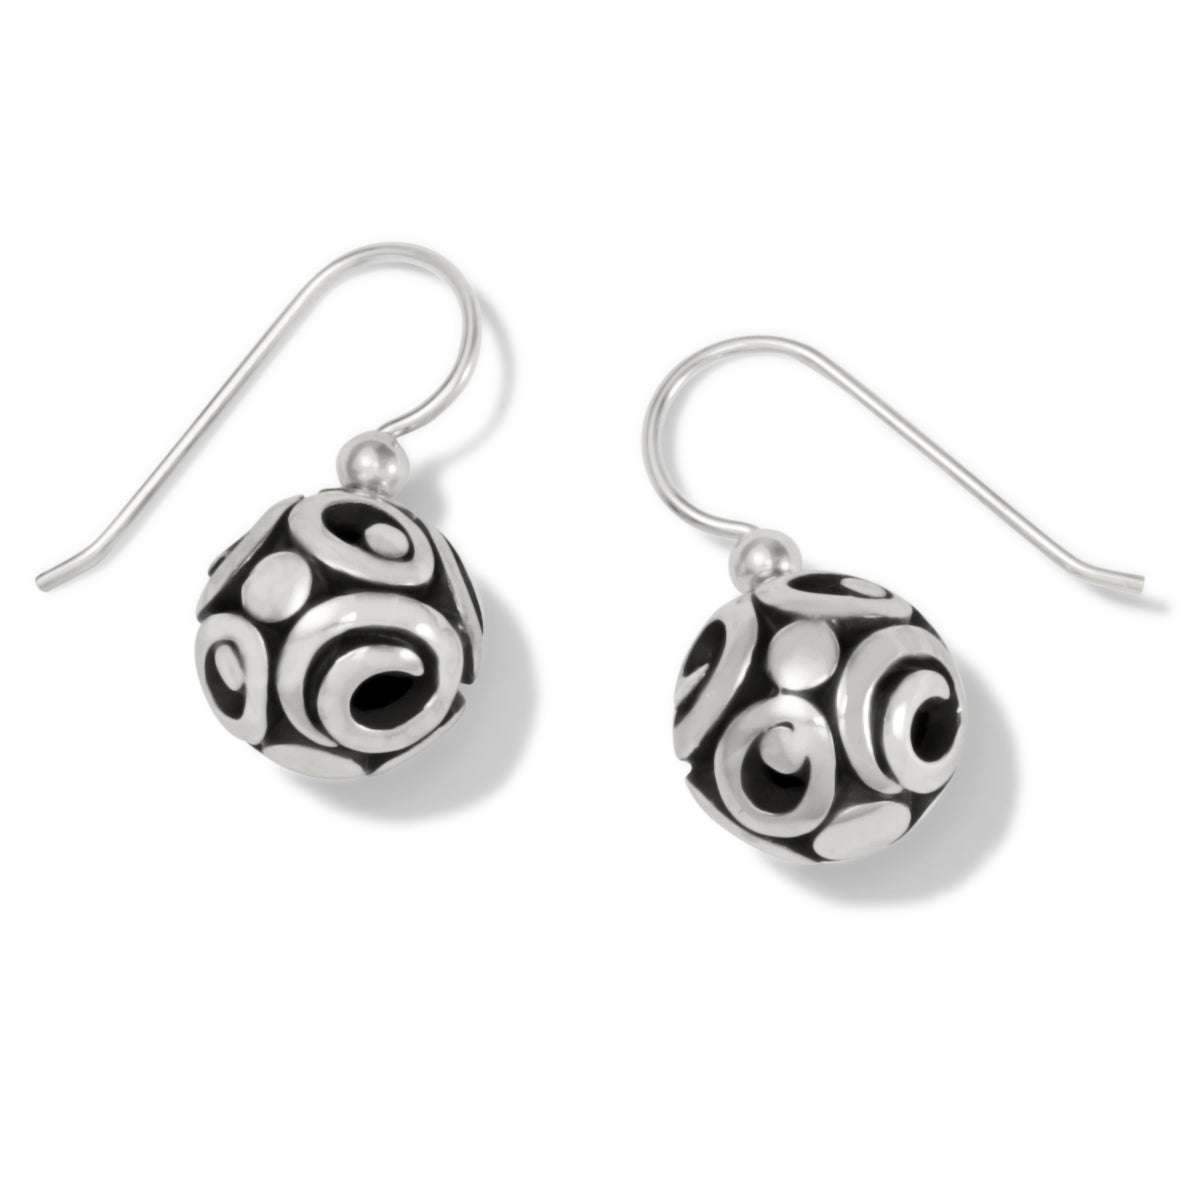 "These Brighton Contempo Sphere French Wire Earrings a flattering silhouette for any face shape. Modern scrolls encircle the spheres on these earrings inspired by the silver jewelry artisanship of Taxco, Mexico.   Width: 1/2"" Type: French Wire Drop: 1/2"" Finish: Silver plated"